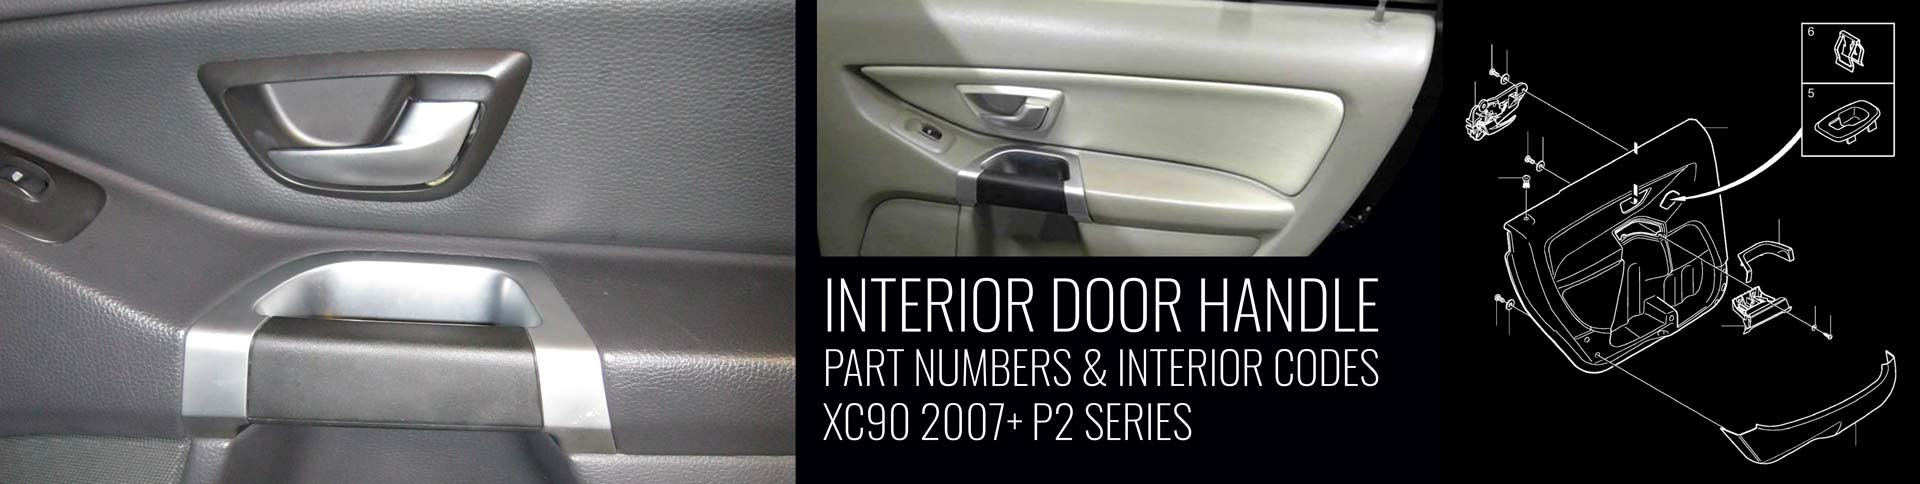 XC90 Interior Door Handle Part Numbers -